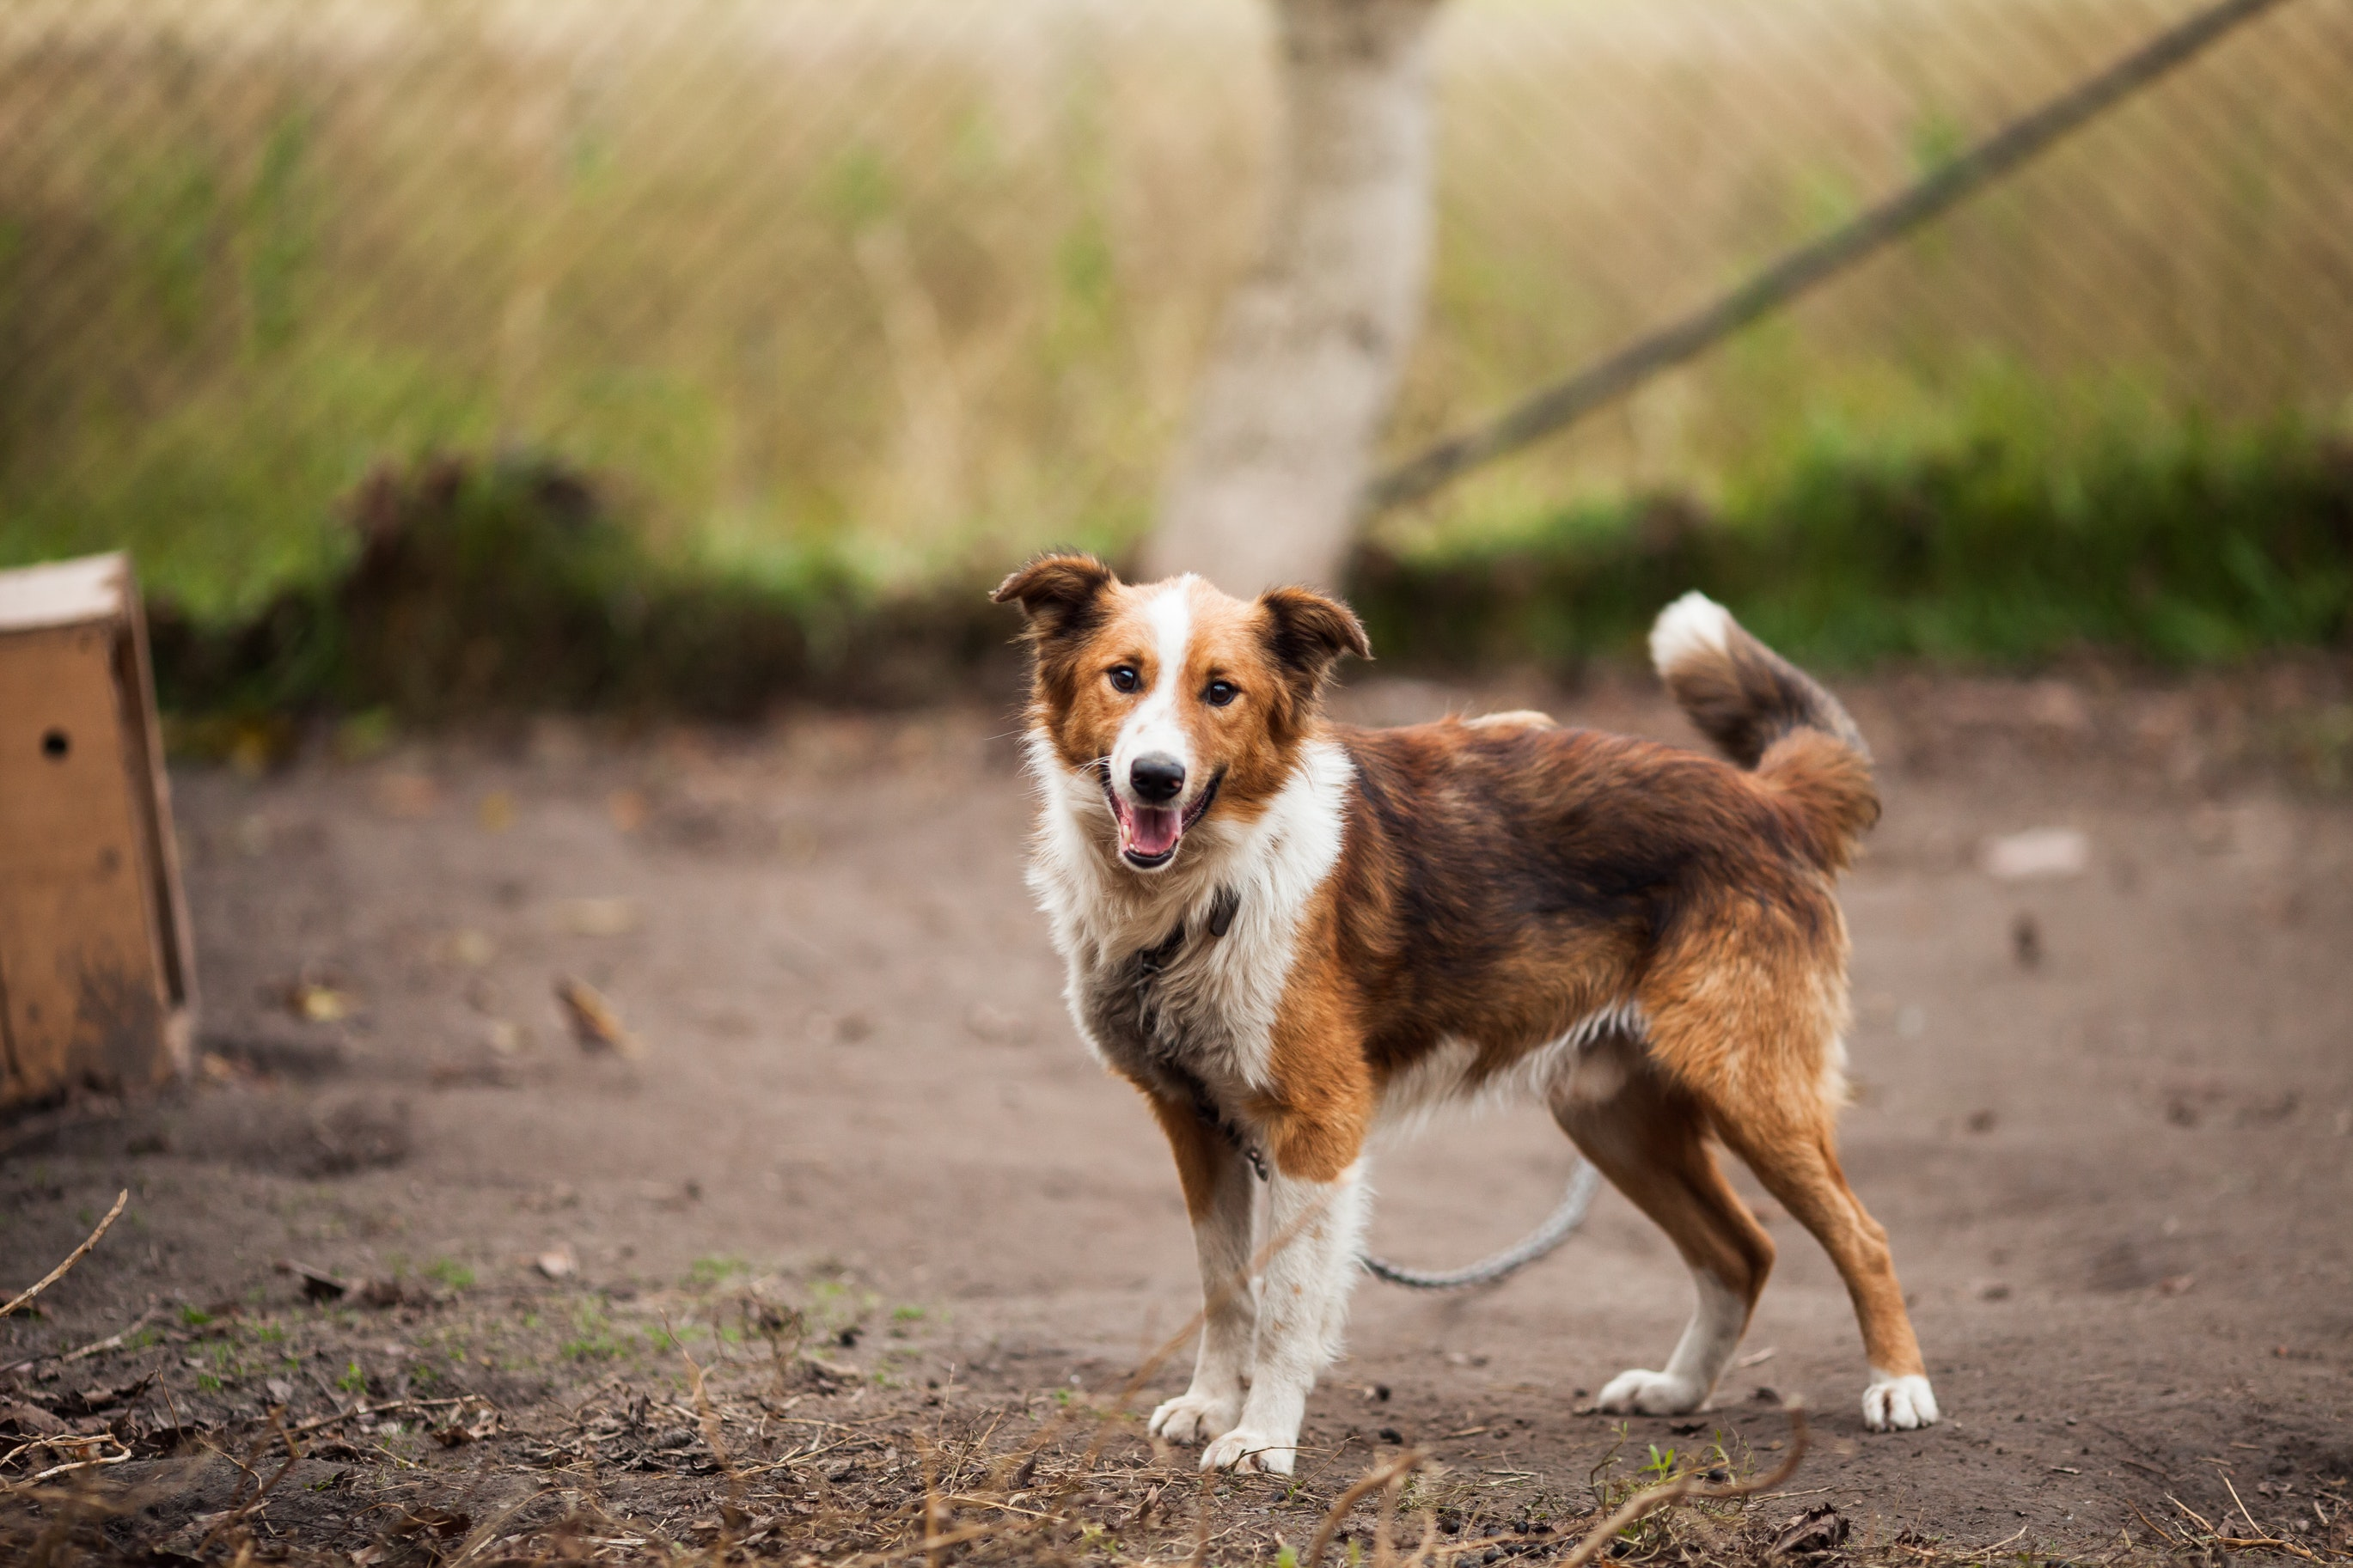 Border collie outdoor near brown wooden dog house photo